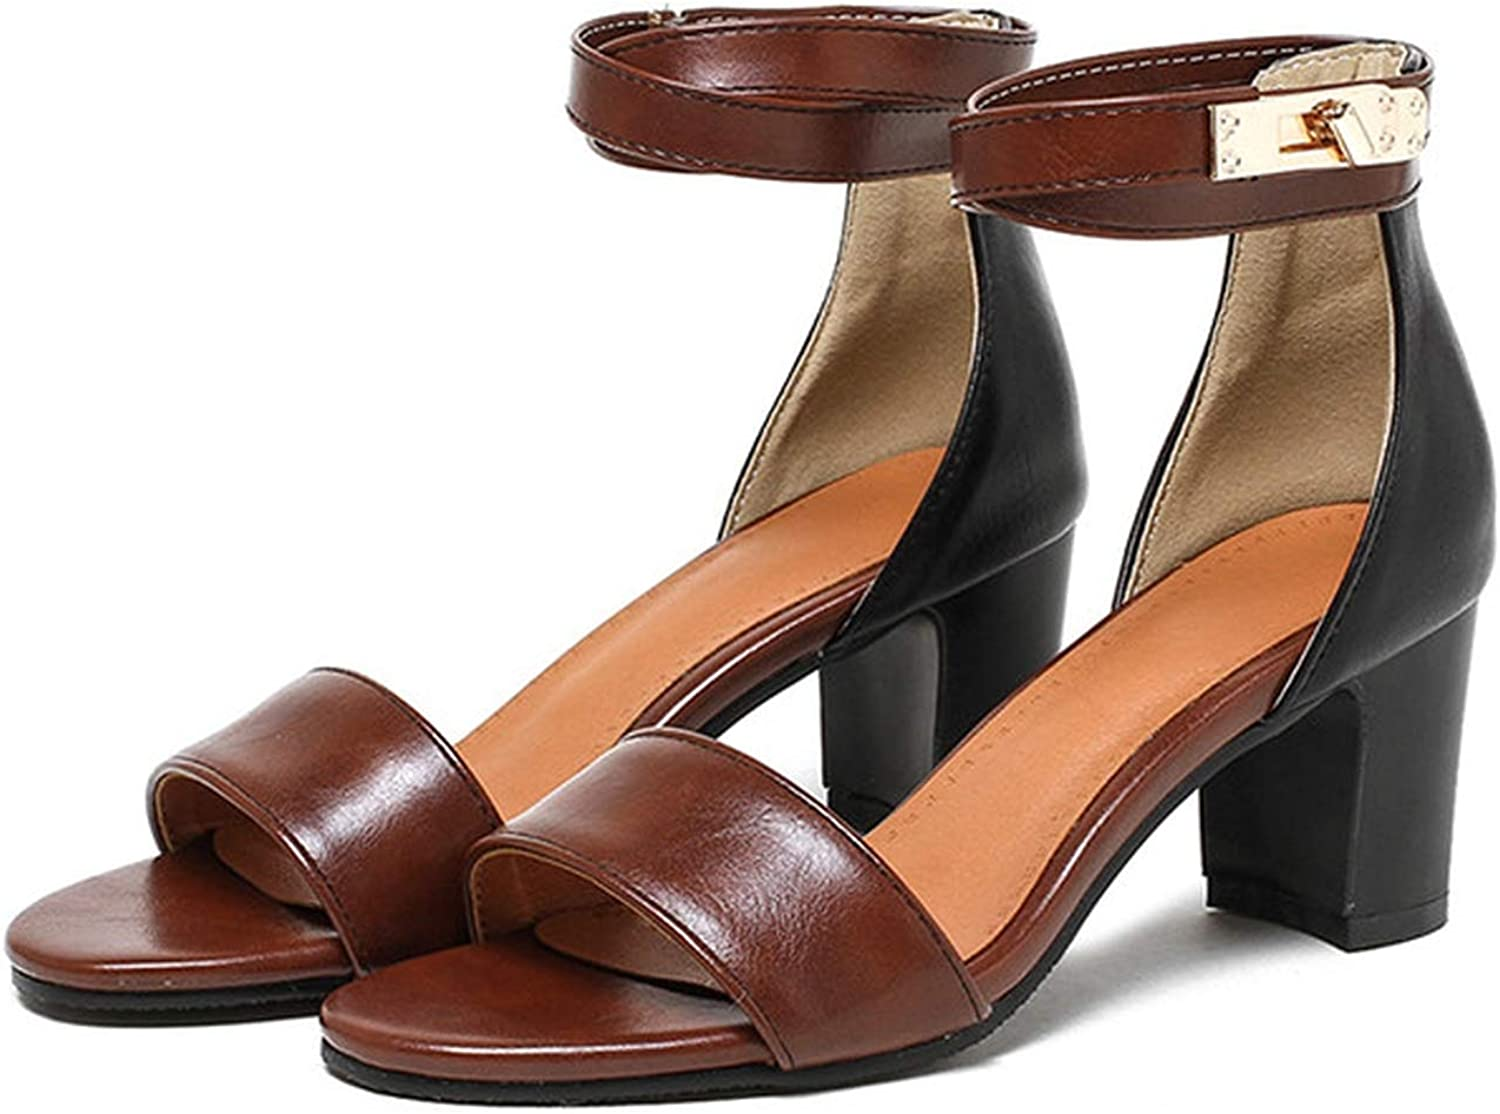 YuJi Summer Sandals Mixed colors Thick High Heels Party shoes Open Toe Ankle Strap Sandals,Brown,4